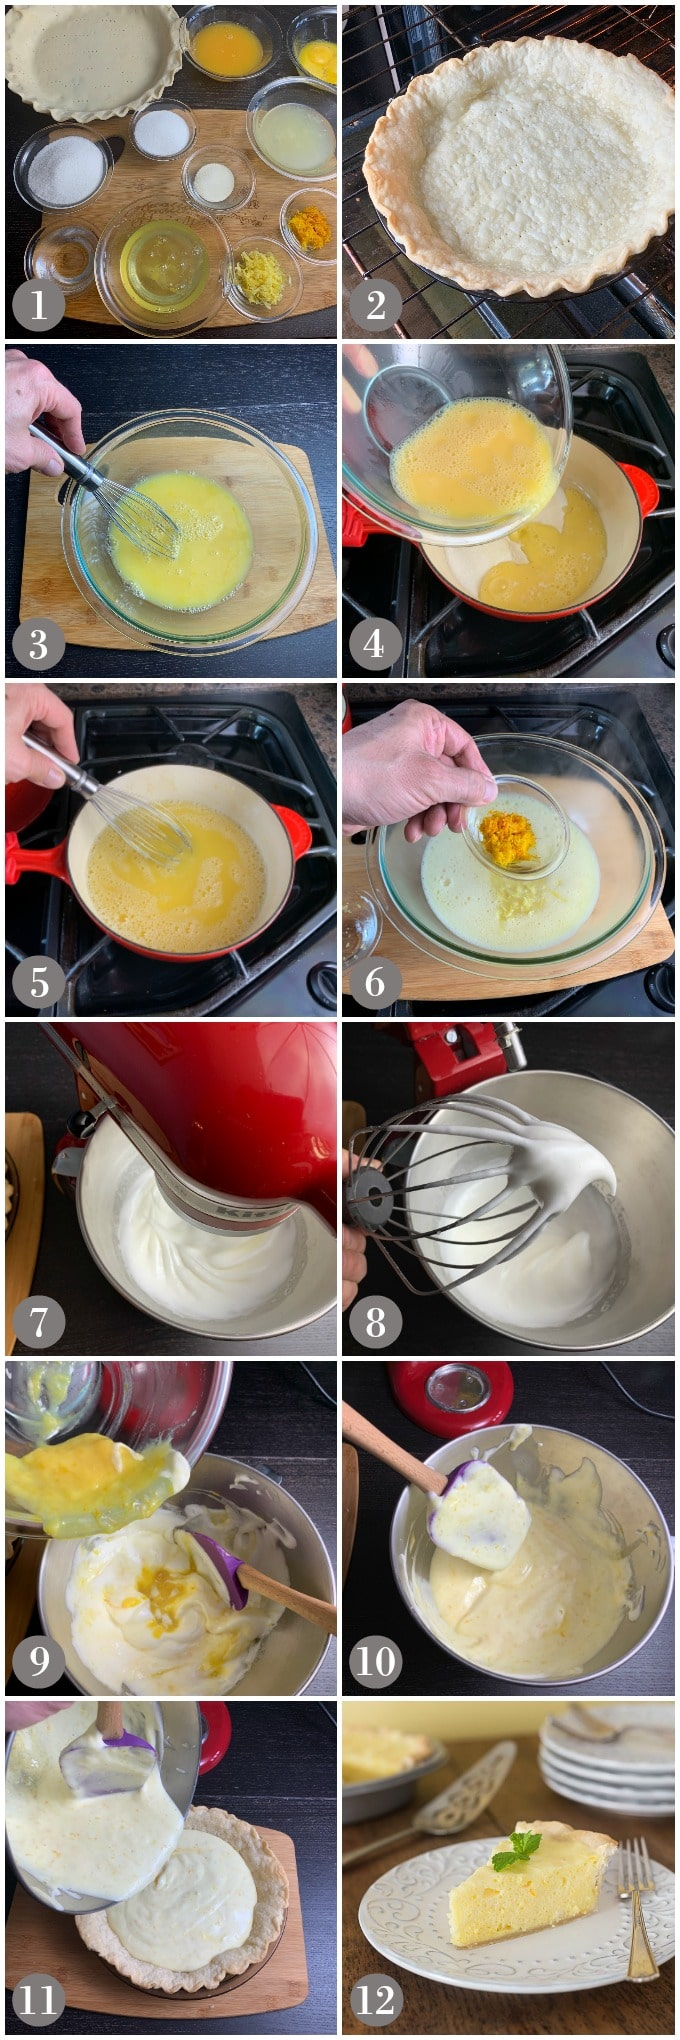 A collage of photos showing steps to make orange and lemon chiffon pie with a stand mixer.